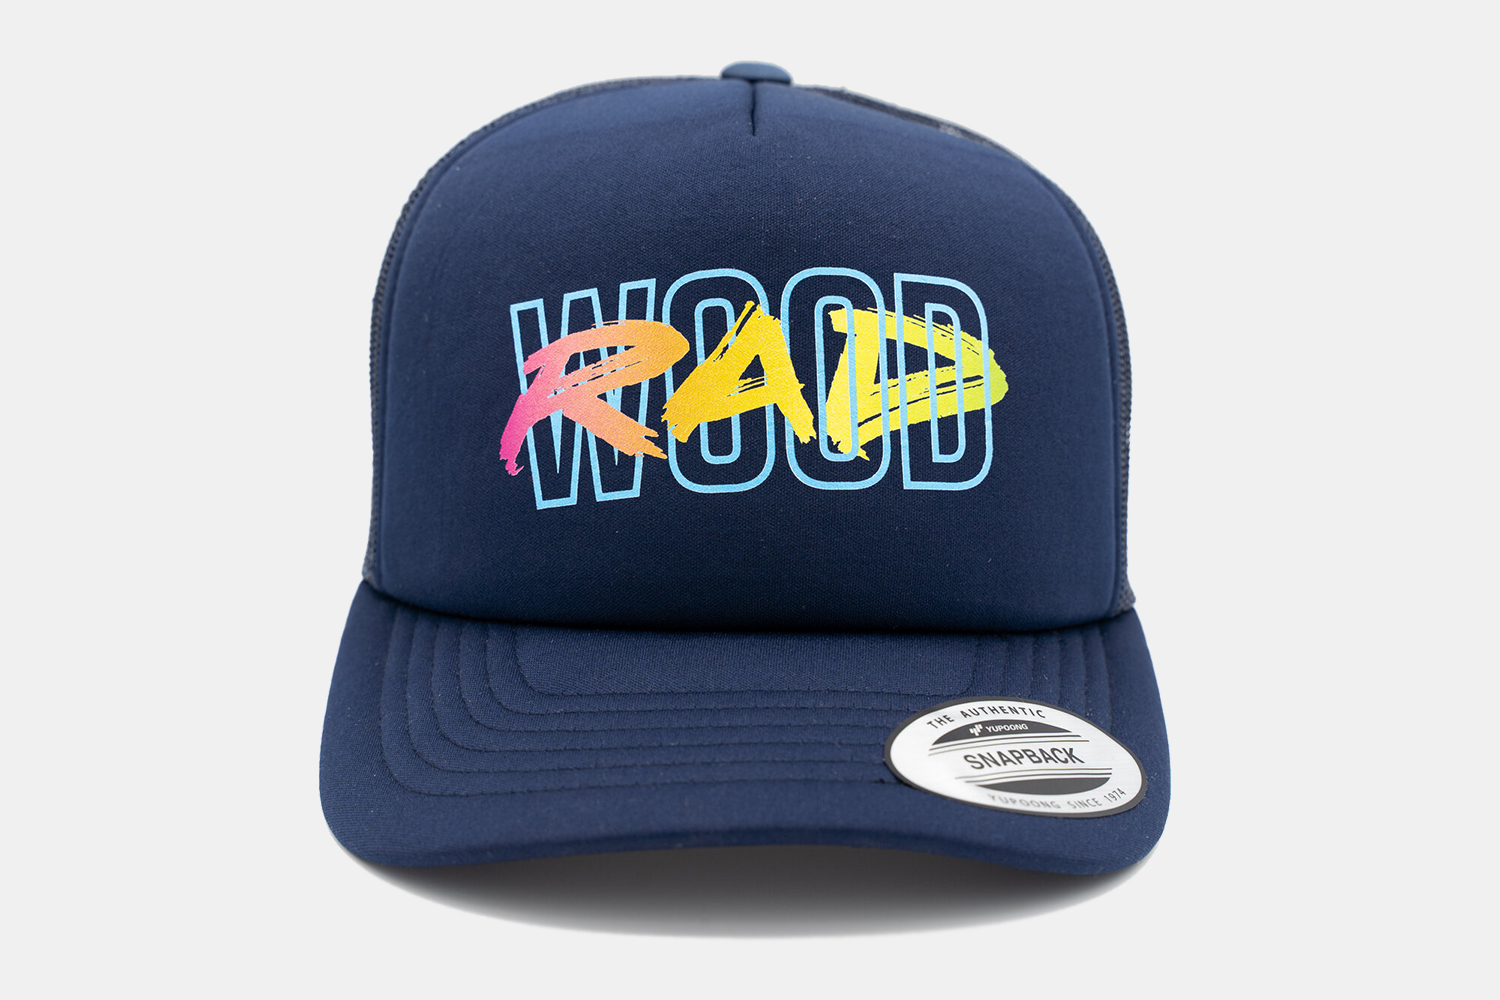 Radwood Trucker Hat